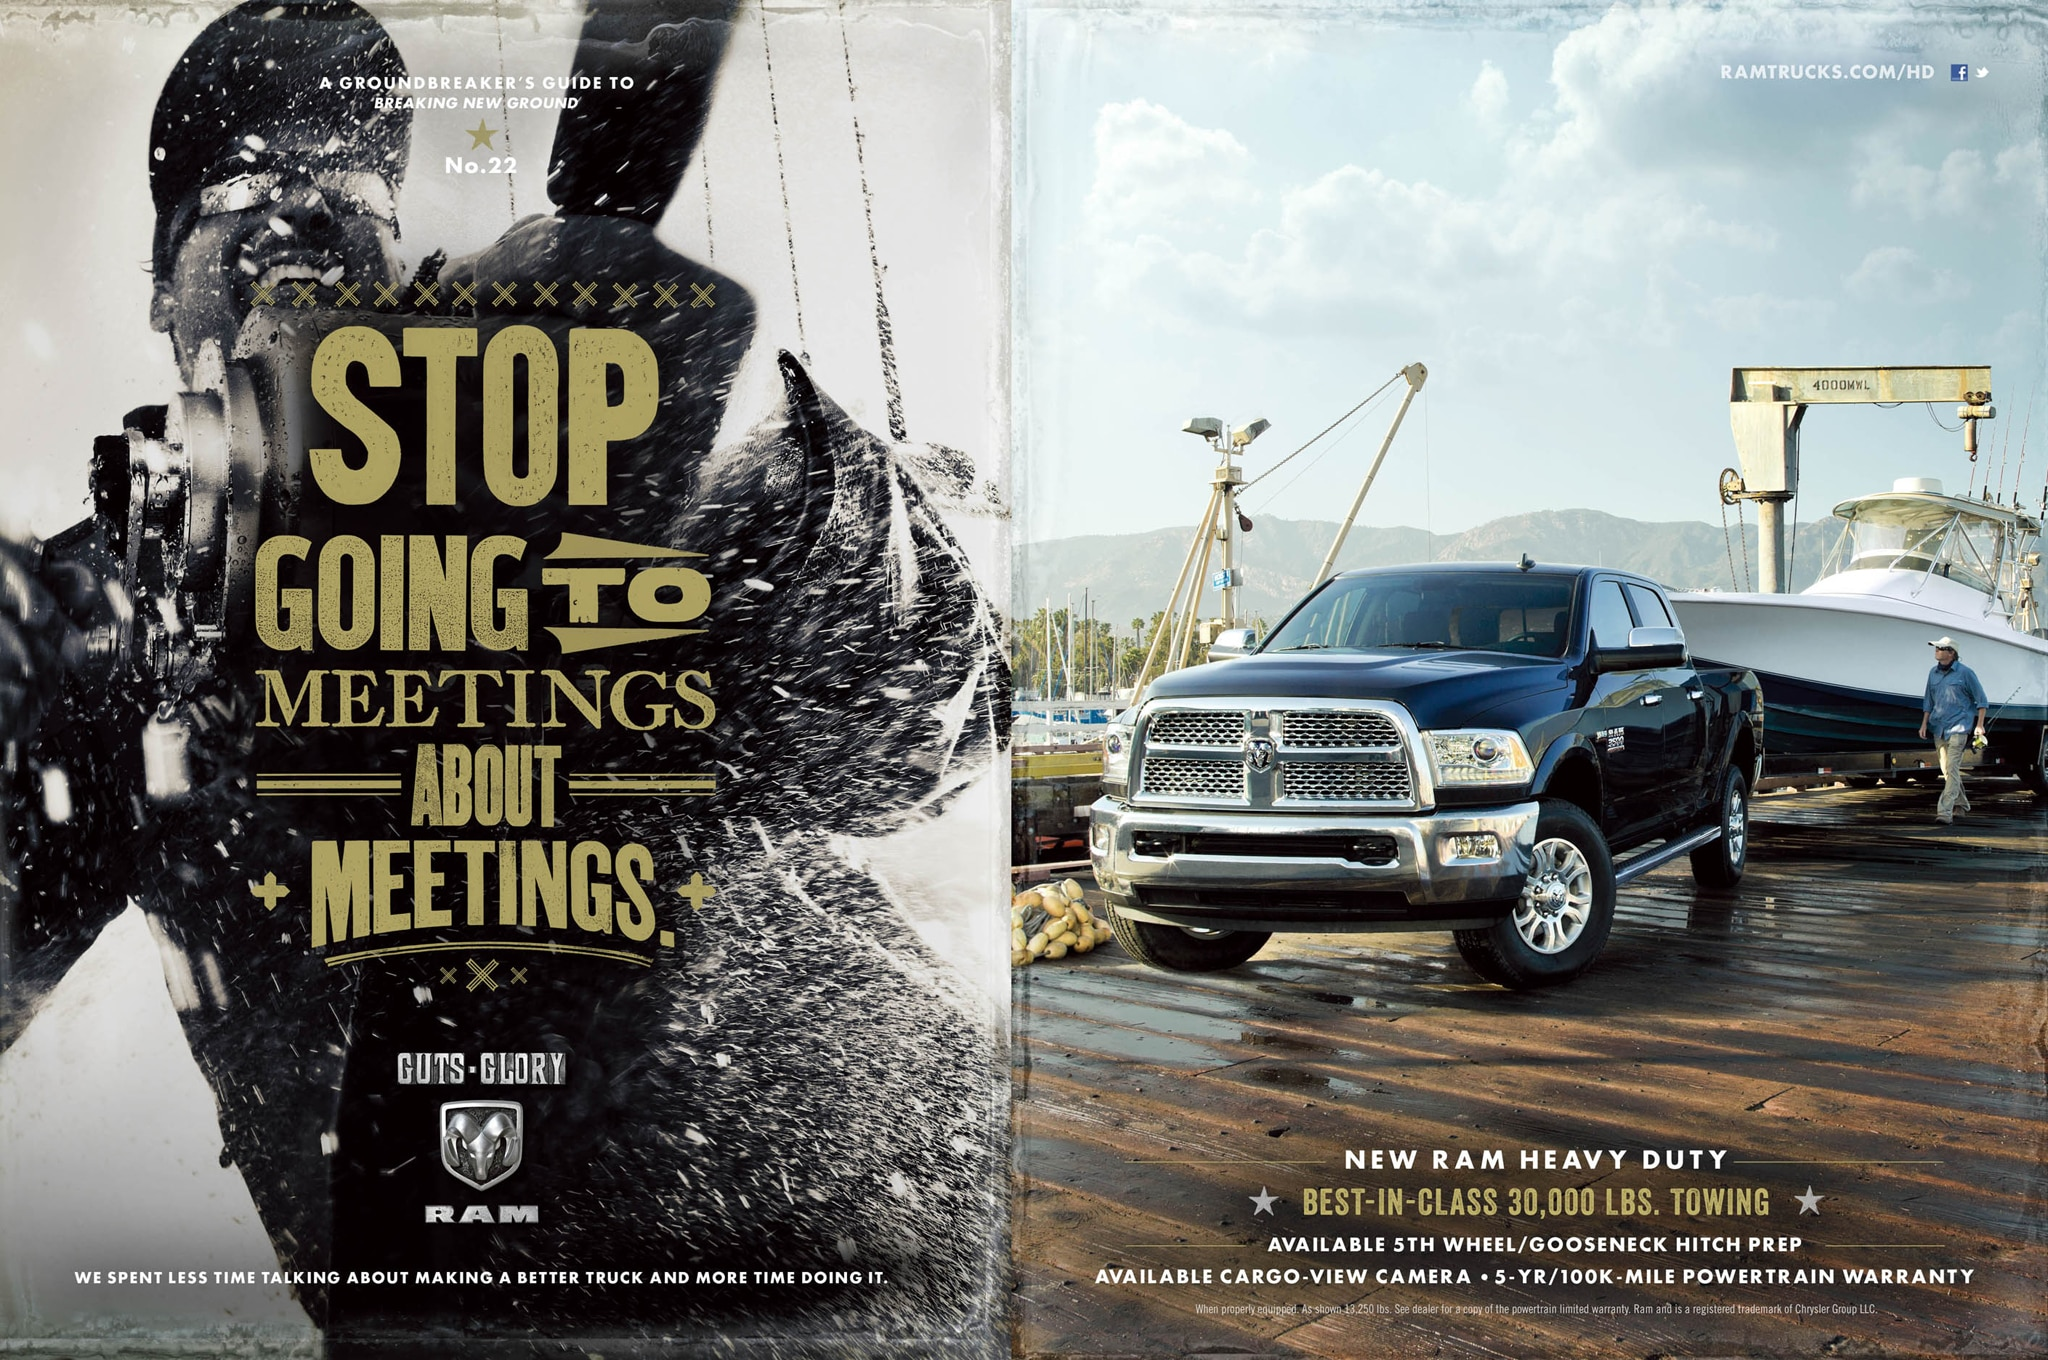 2014 Ram Hd Meetings1